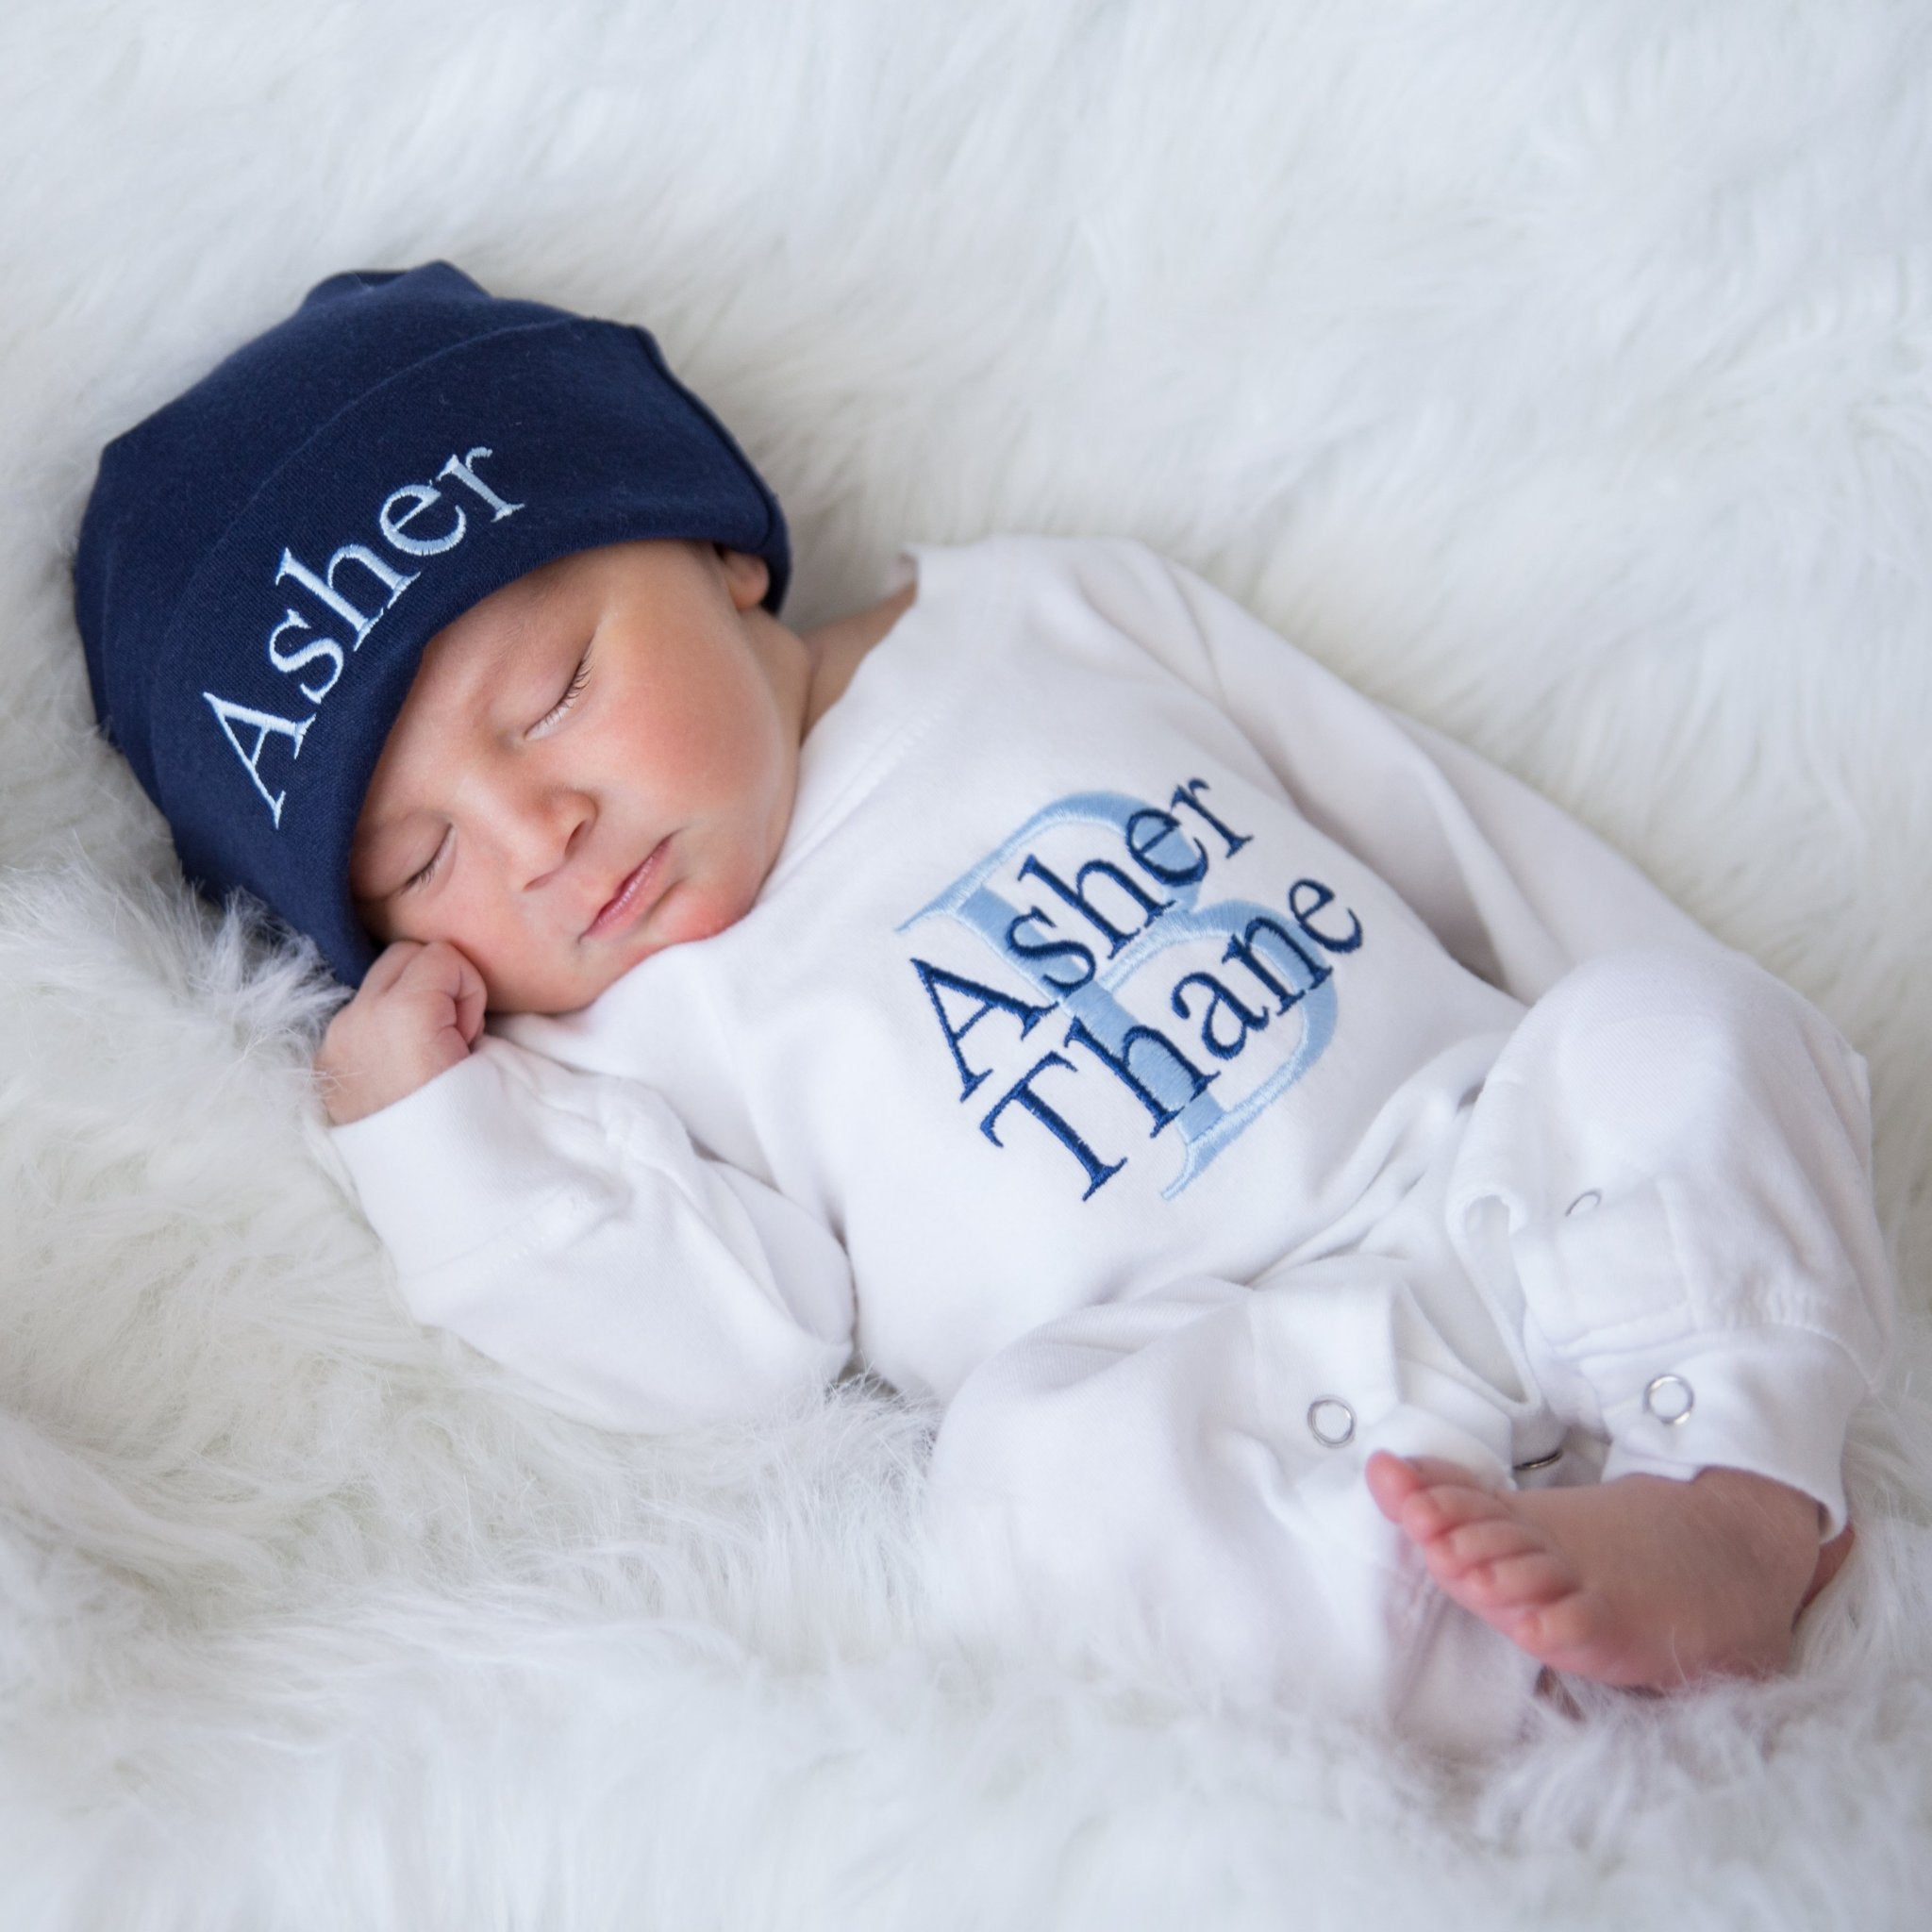 98f8cd1f134 Personalized White   Navy Baby Boy Matching Romper and Hat Coming Home  Outfit